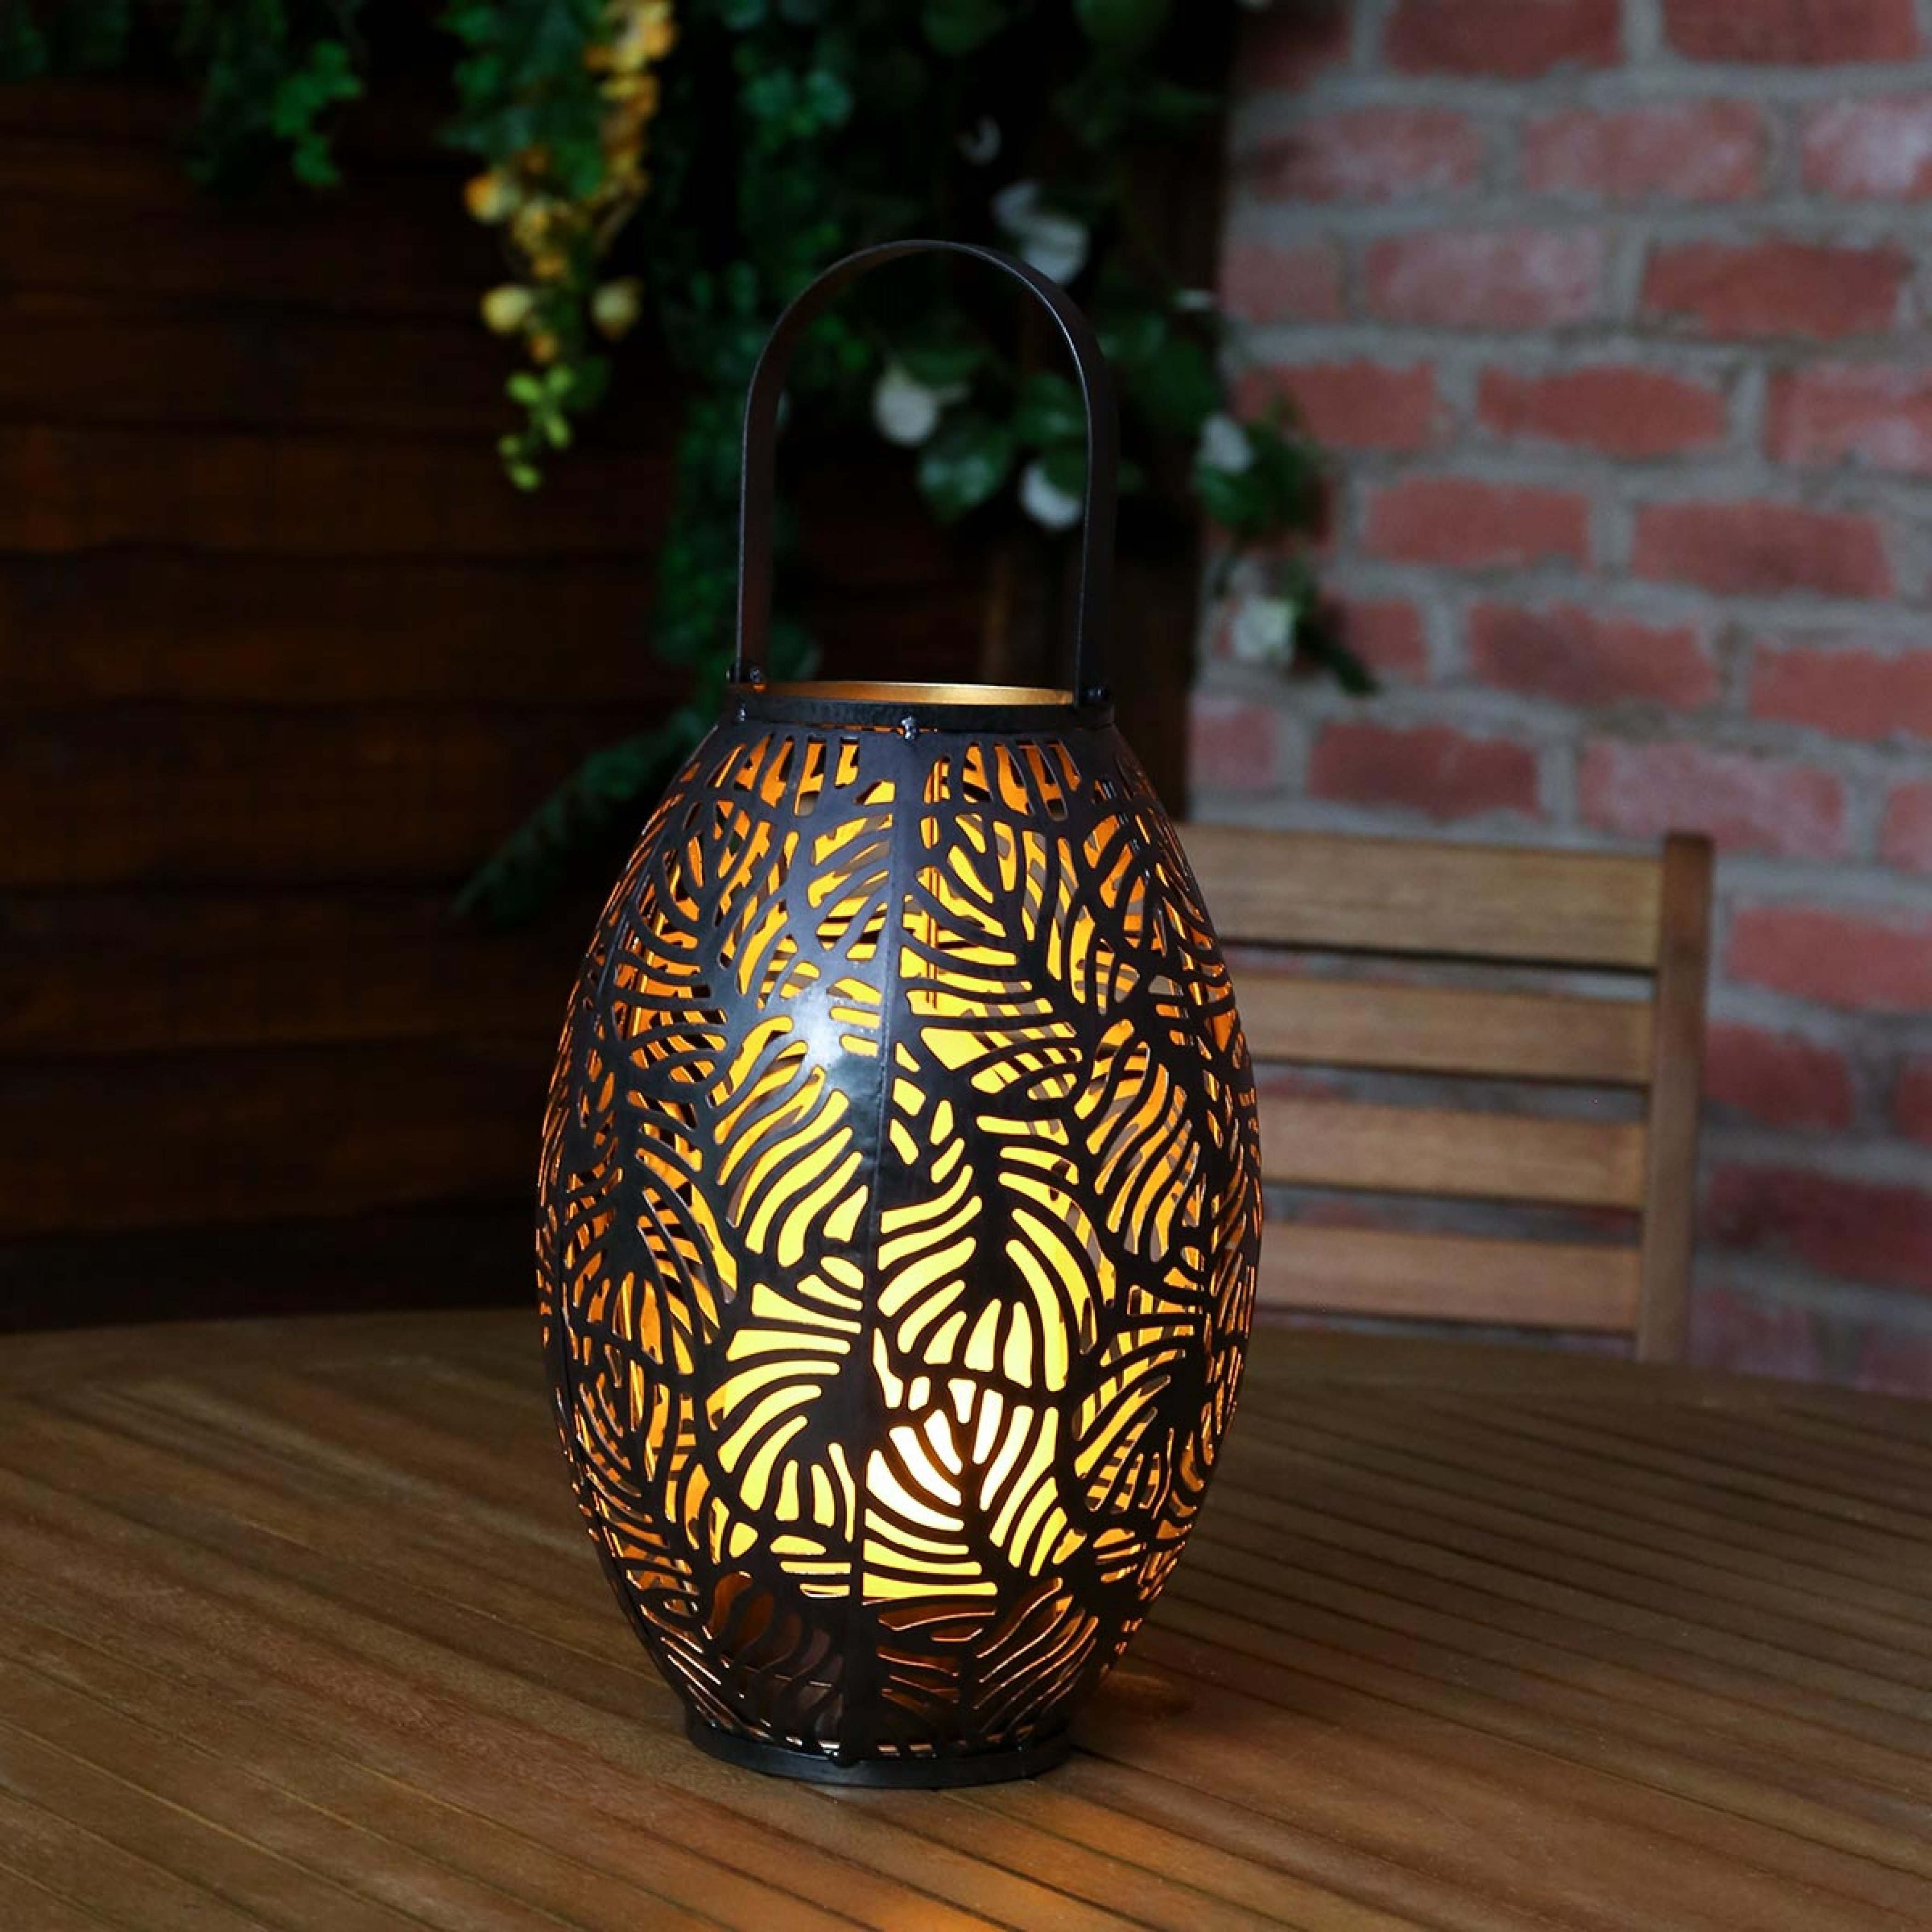 Outdoor Battery Bronze Rustic Cool Flame Lantern Pertaining To Famous Rustic Outdoor Electric Lanterns (View 10 of 20)